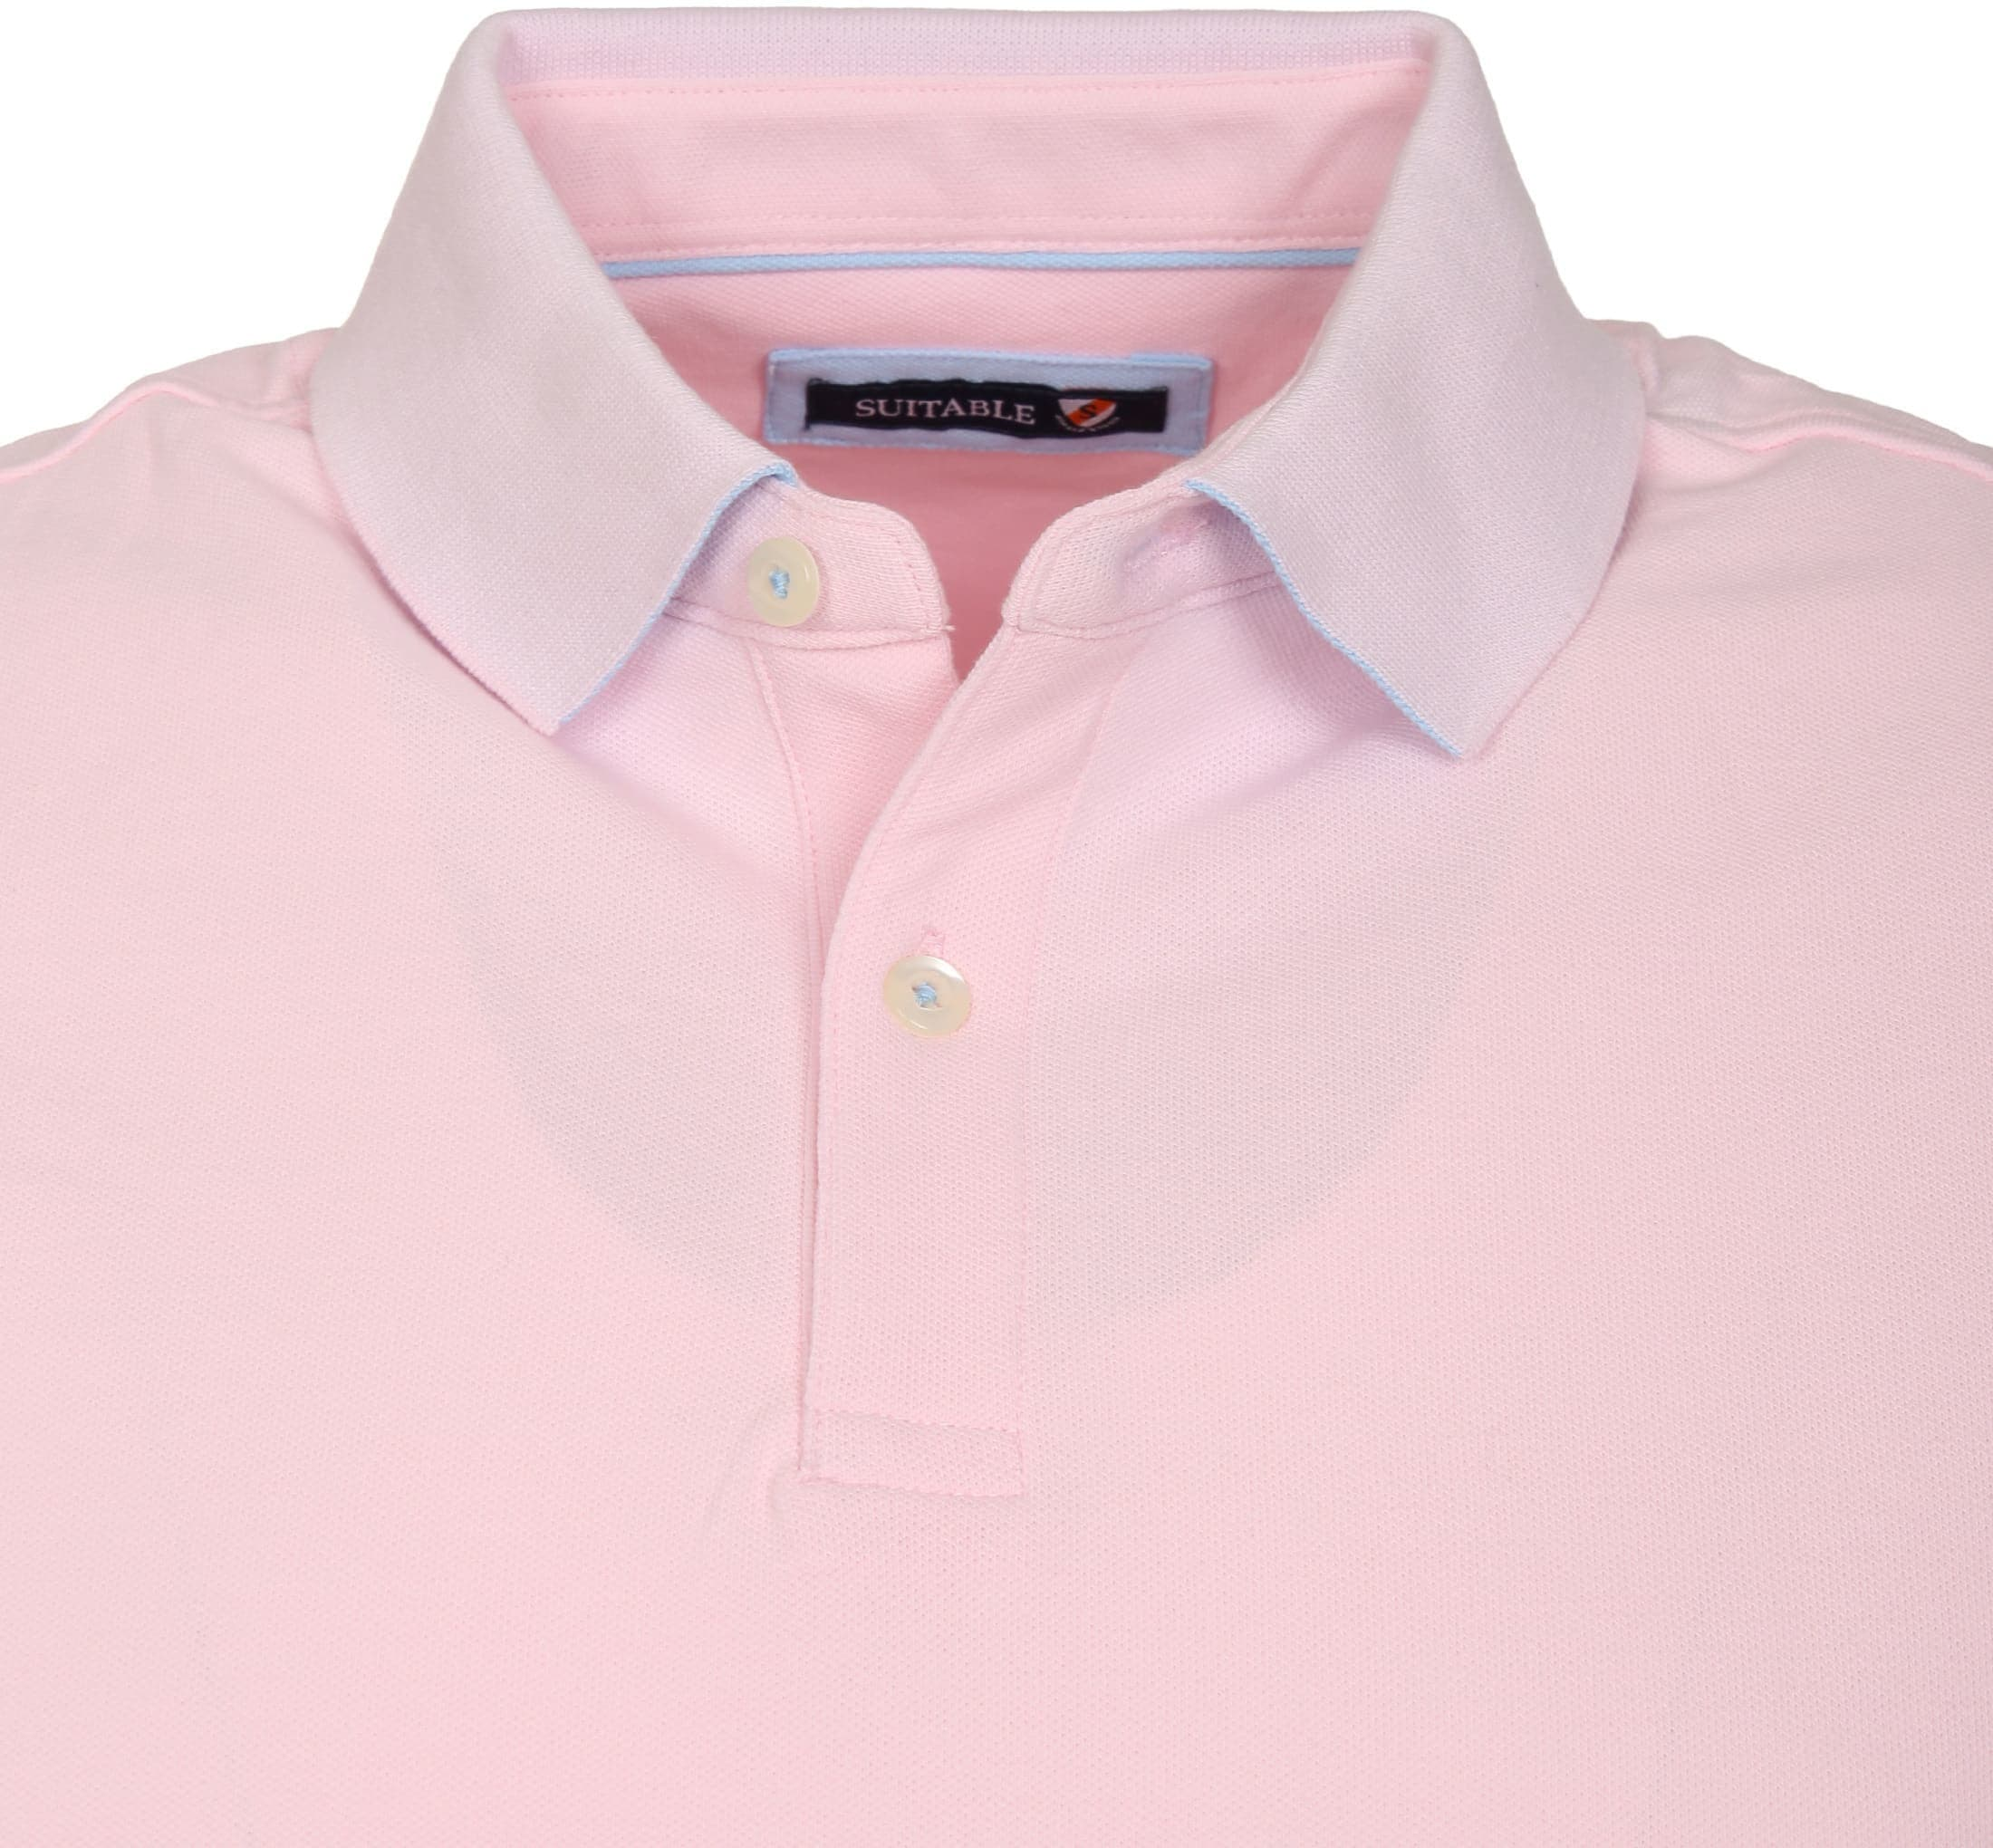 Suitable Poloshirt Basic Rosa foto 1